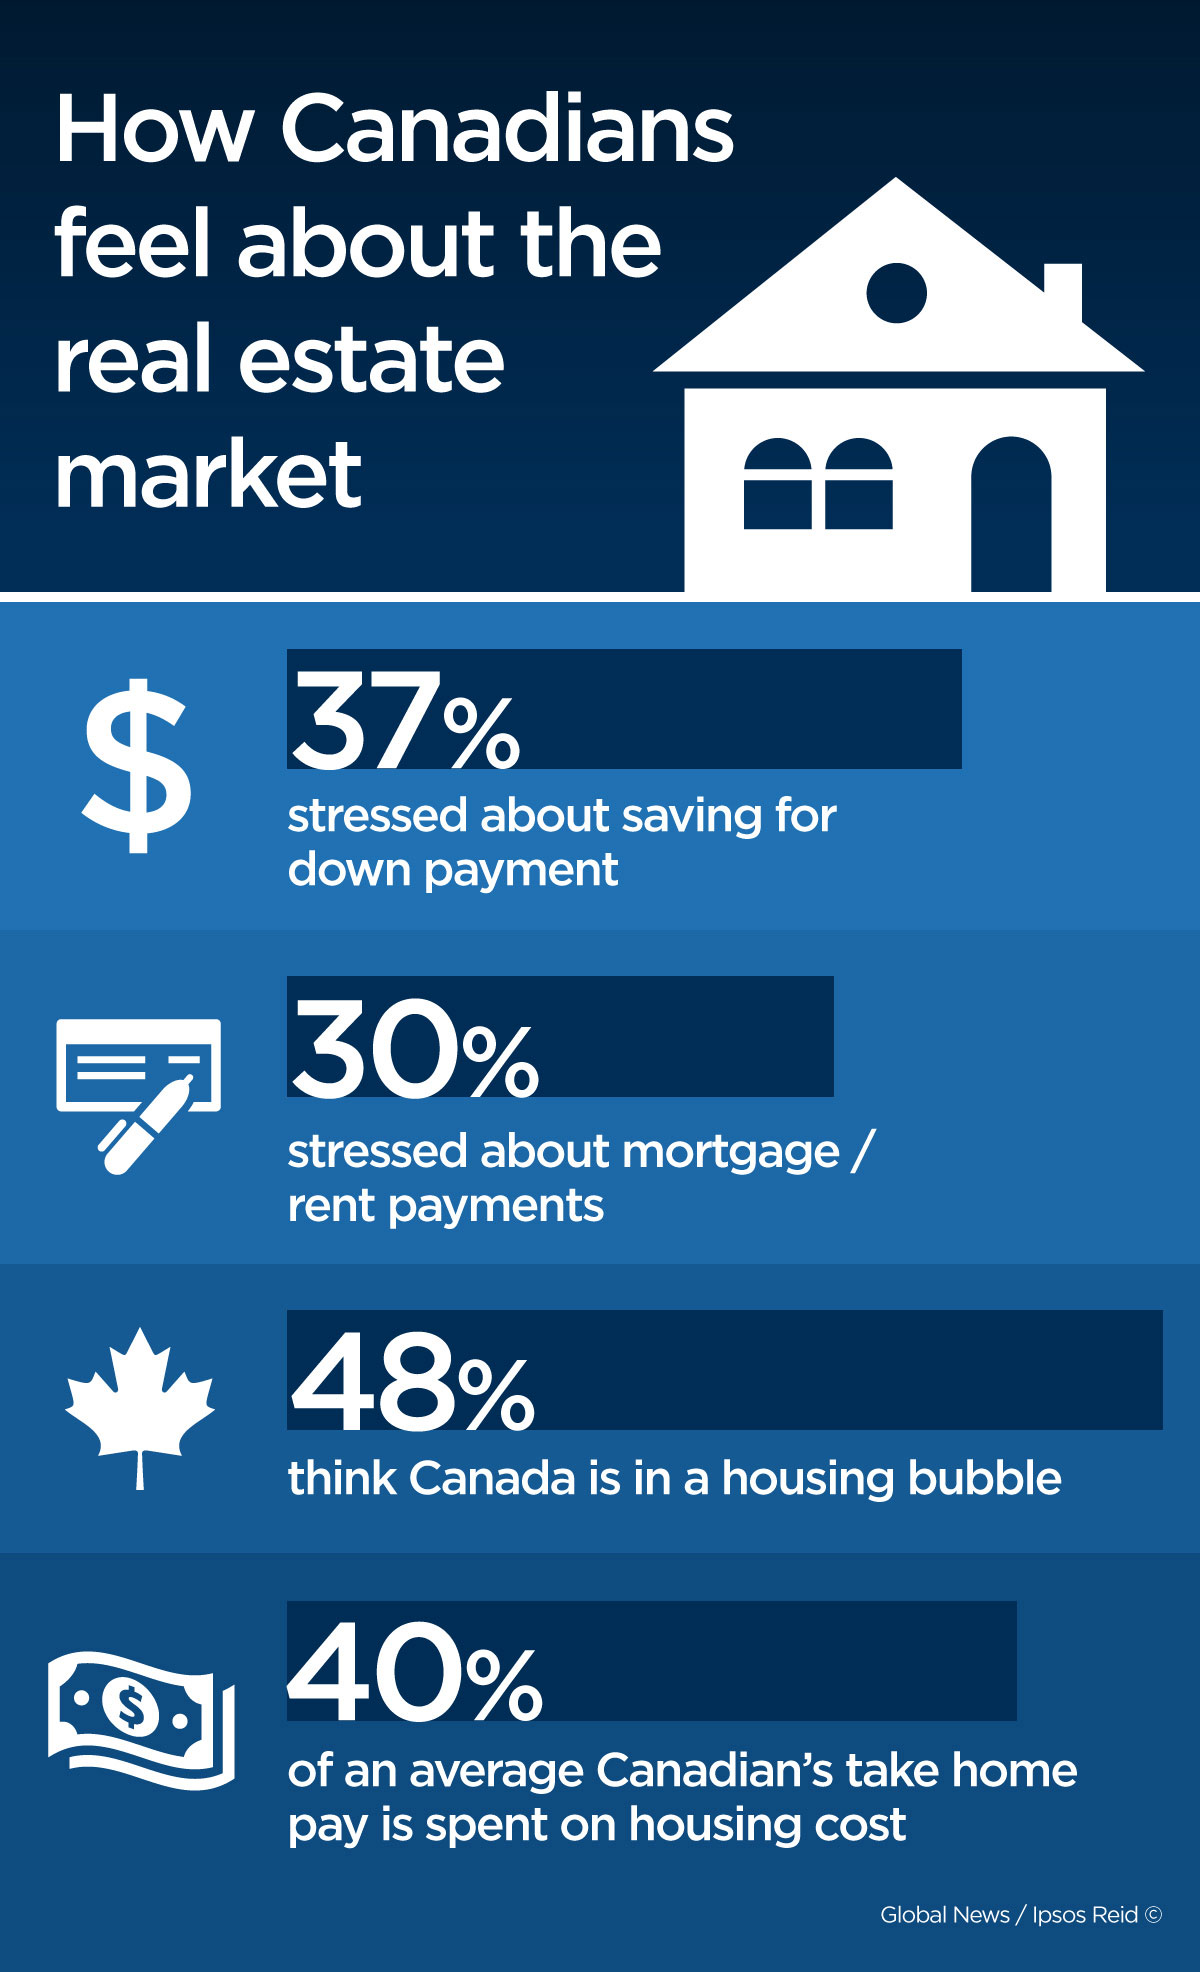 A new Ipsos Reid poll done exclusively for Global News found that one in three Canadians are stressed about making mortgage or rent payments.